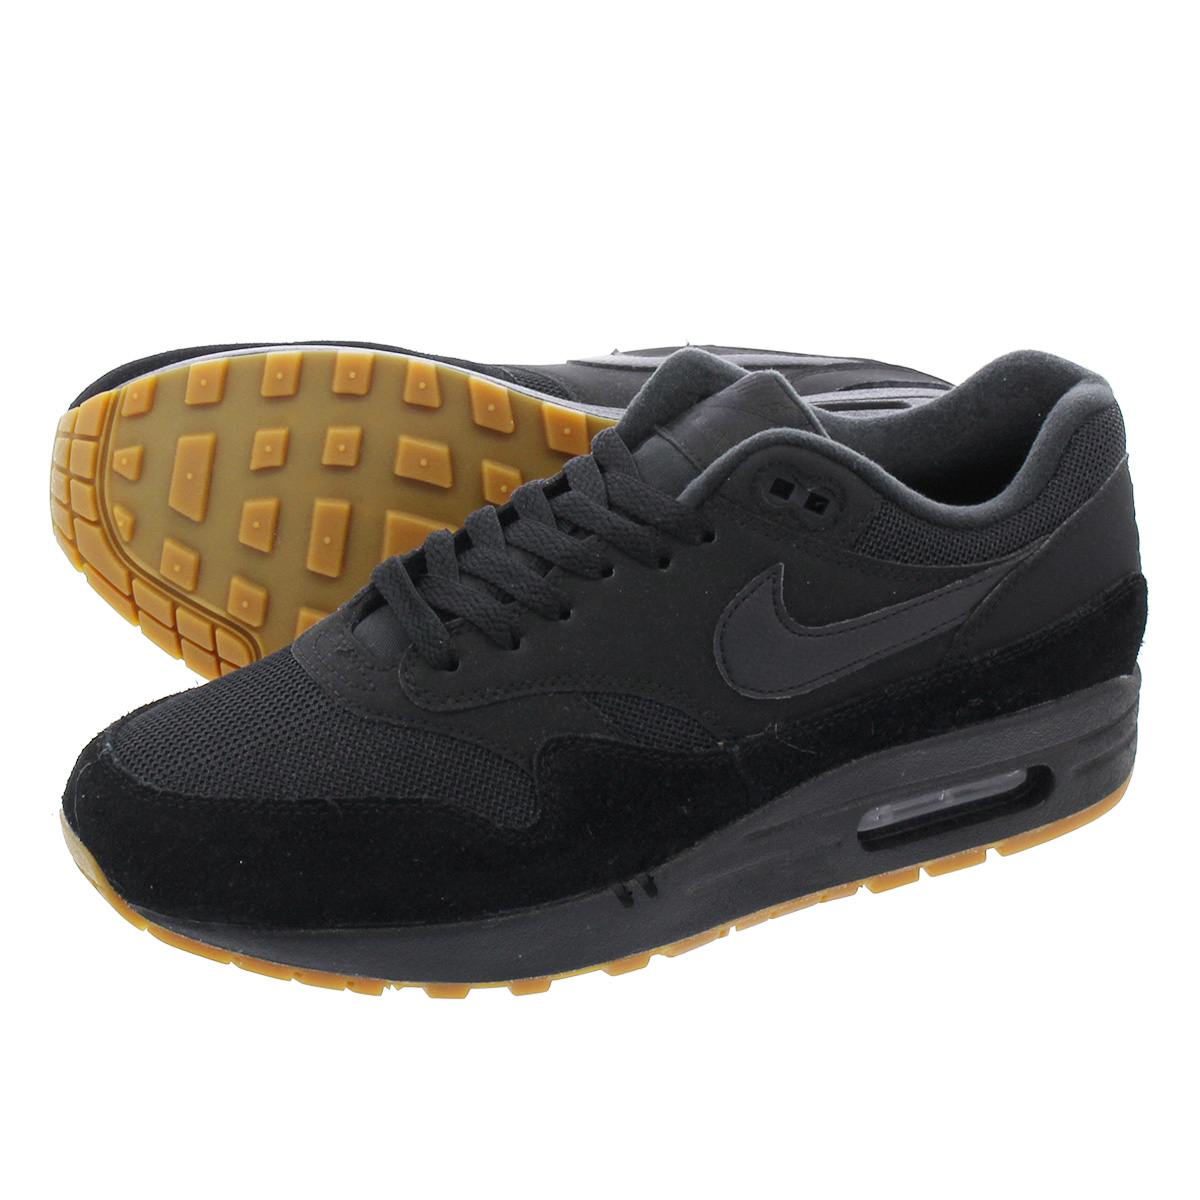 LOWTEX PLUS  NIKE AIR MAX 1 Kie Ney AMAX 1 BLACK BLACK BLACK GUM MEDIUM  BROWN ah8145-007  68ccec39e